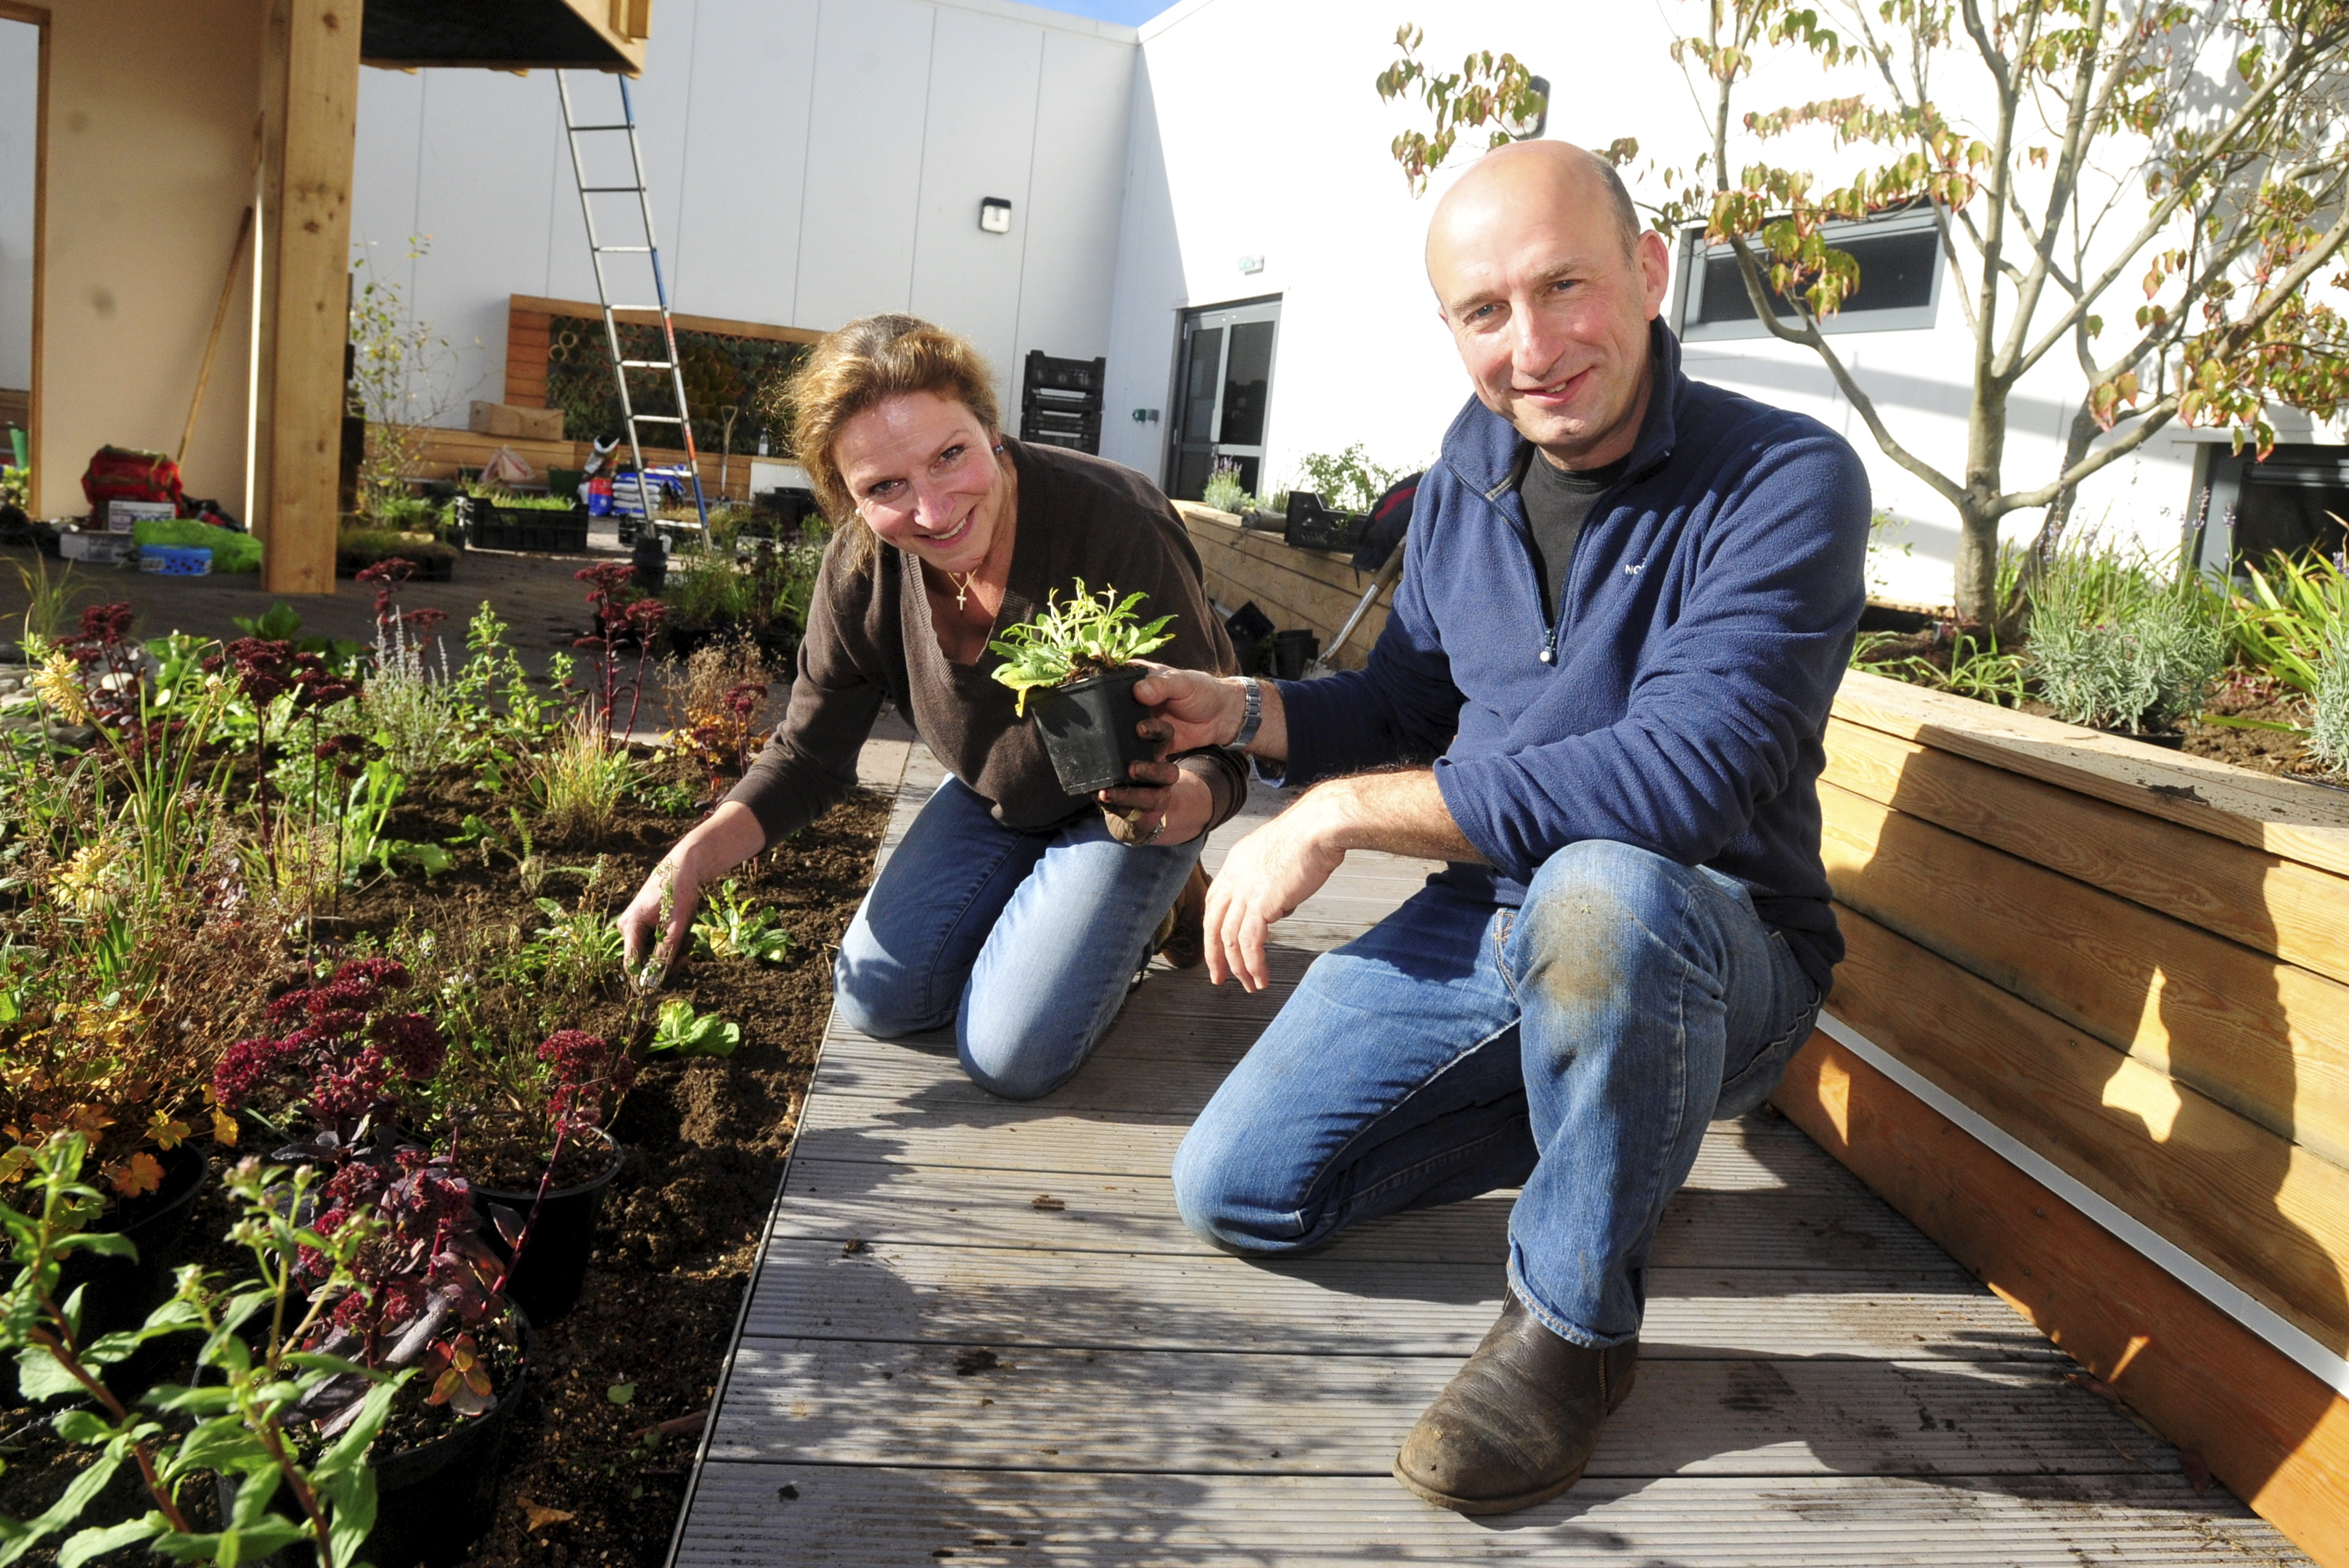 Professor Nigel Dunnett was at Aberdeen Royal Infirmary's therapeutic garden to help with planting.